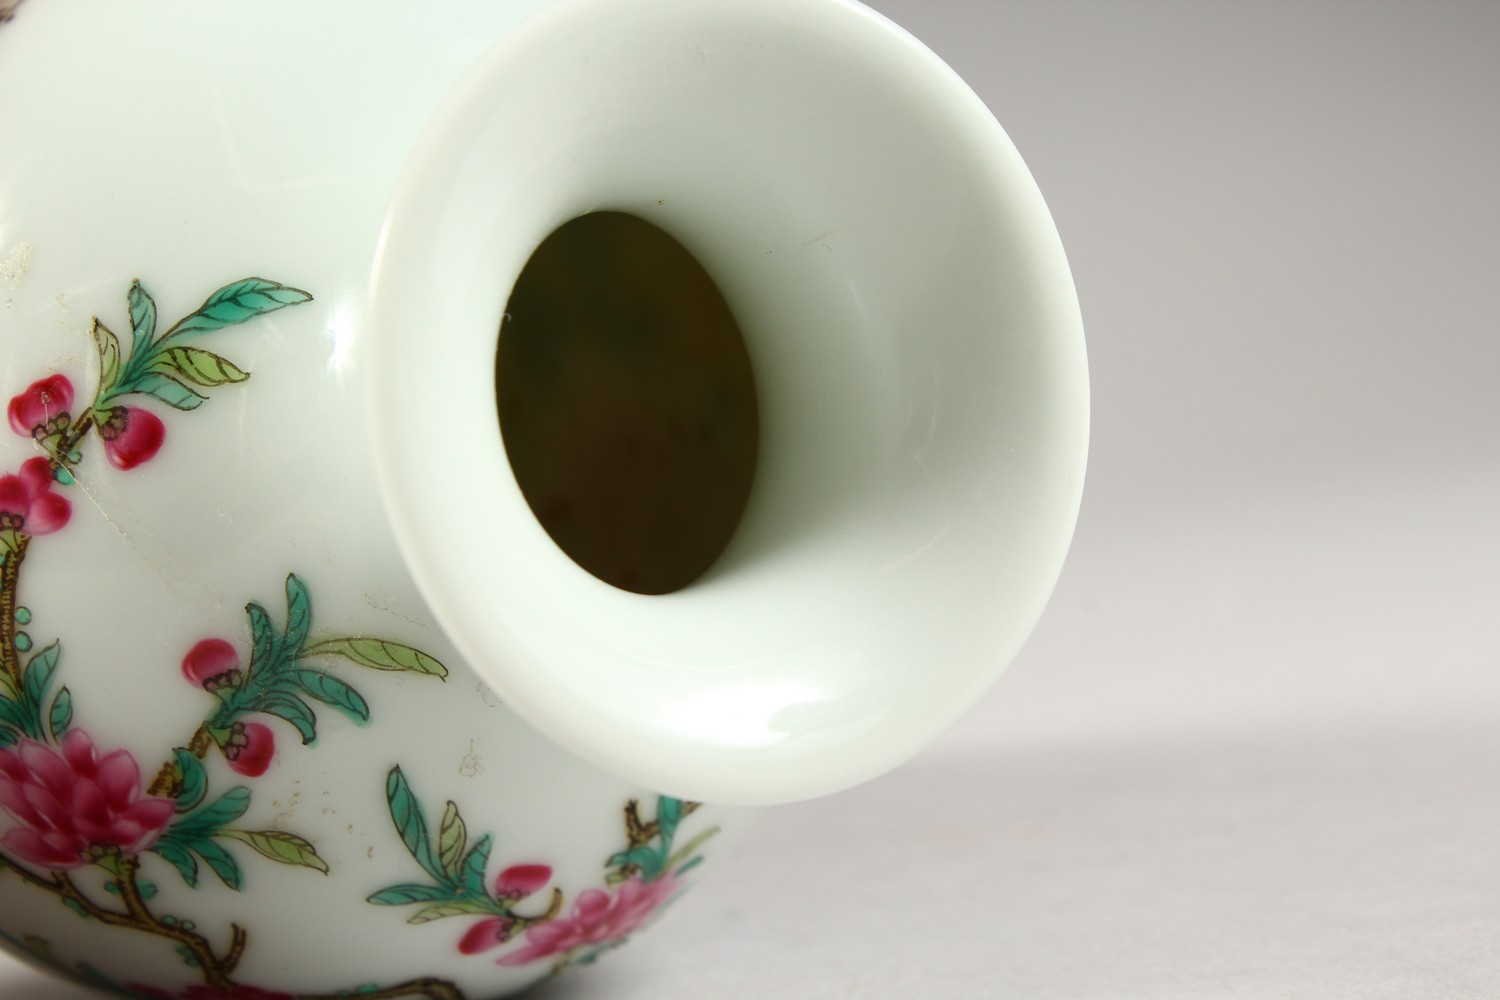 A GOOD CHINESE REPUBLIC STYLE FAMILLE ROSE PORCELAIN VASE, the body decorated with scenes of birds - Image 7 of 8